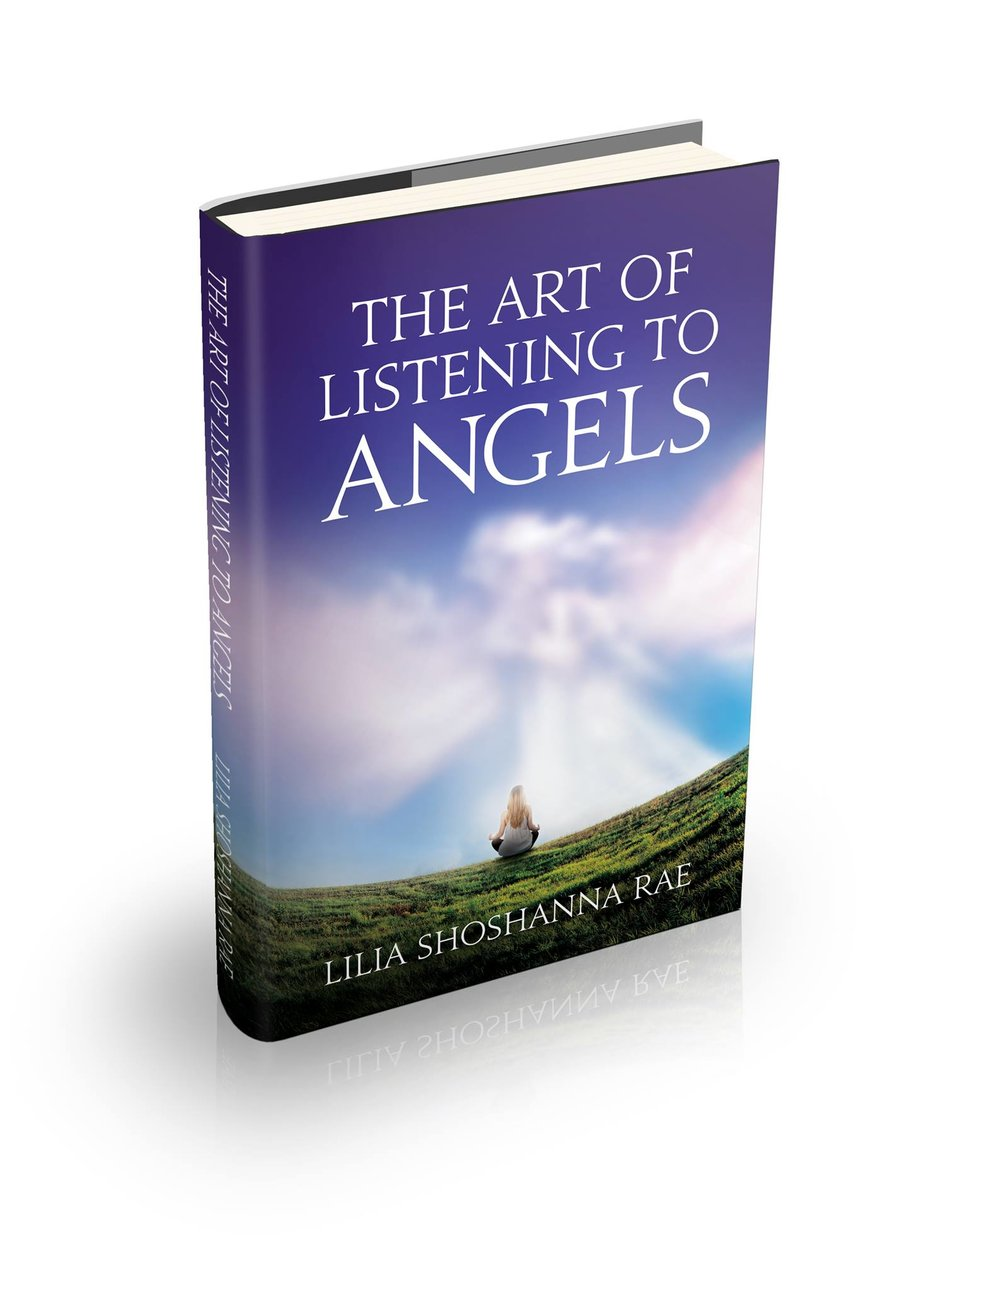 The Art of Listening to Angels - To her surprise, Lilia, when she was working as a state government lawyer, found herself talking to angels one day. By opening up to receiving these angelic messages, she ventured onto a new path of spiritual transformation, awakening to the depth and breadth of the Spirit realm and to her purpose: showing how we can live heaven on earth with the assistance of angels.In The Art of Listening to Angels, Lilia shows how accessible angels are to help us on our spiritual path. In fact, as she was writing the book, the angels gave Lilia a five-step method for communicating with angels that helps achieve an enhanced connection. The process can be used for communicating with loved ones who have birthed into Spirit and other spiritual beings of love and light.The angels also gave their spin on five basic truths for living a soul-inspired life:• Know Yourself• Love Yourself• Be Here Now• As Above, So Below; As Below, So Above; As   Within, So Without• We Are One